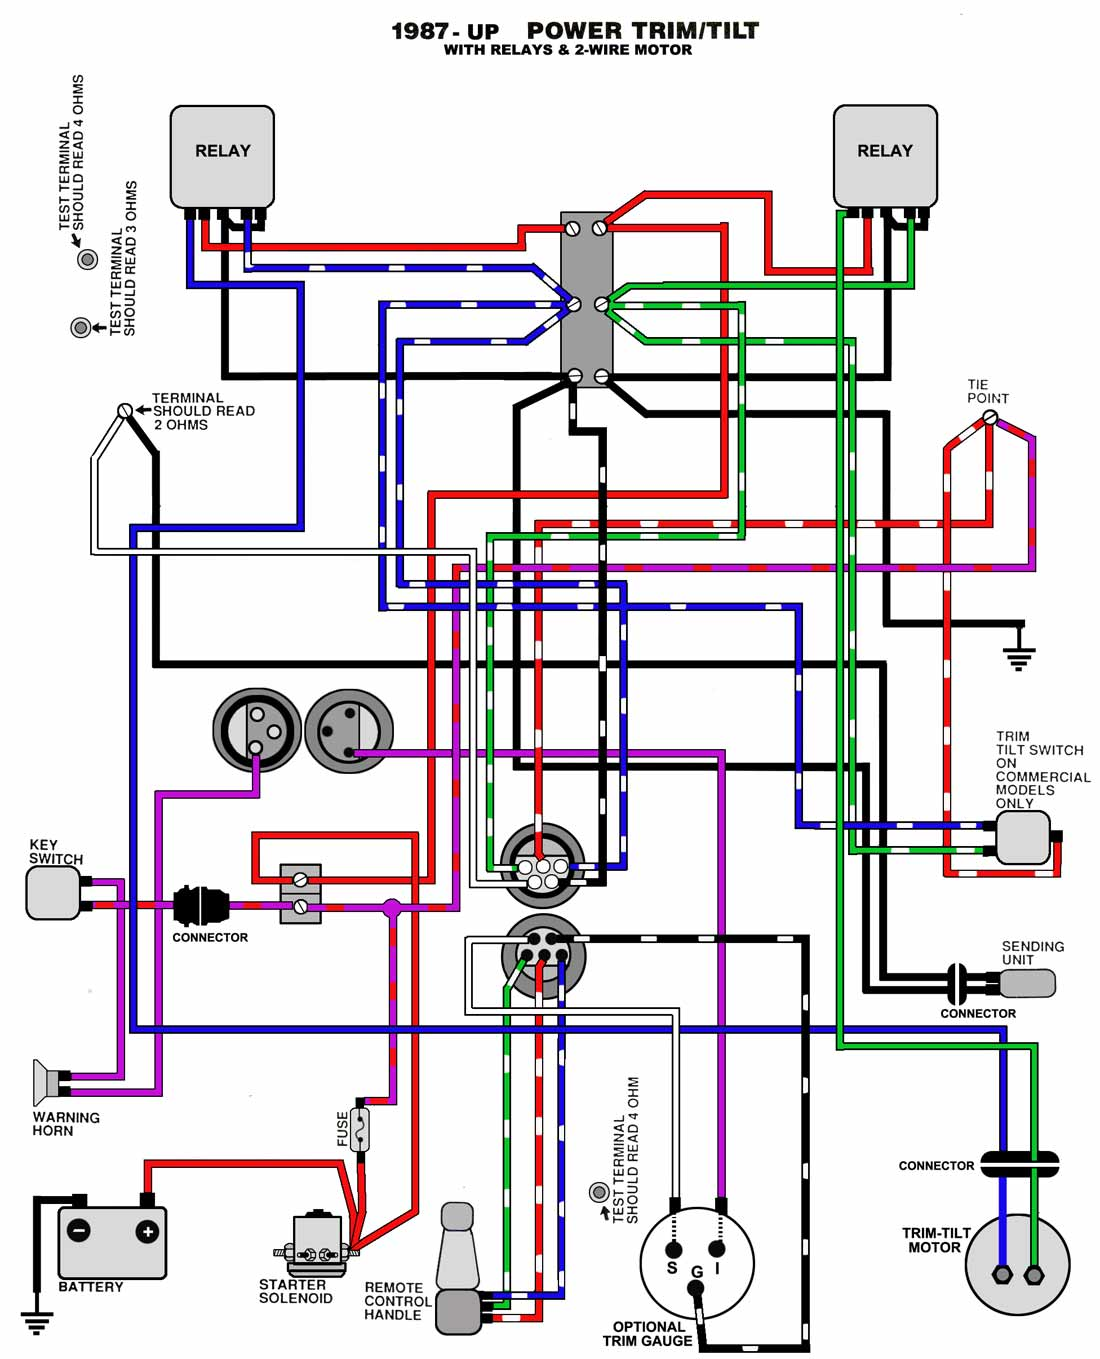 ... TnT_87_UP?resize=680%2C840 1969 johnson outboard wiring diagram 1969  johnson 55 hp